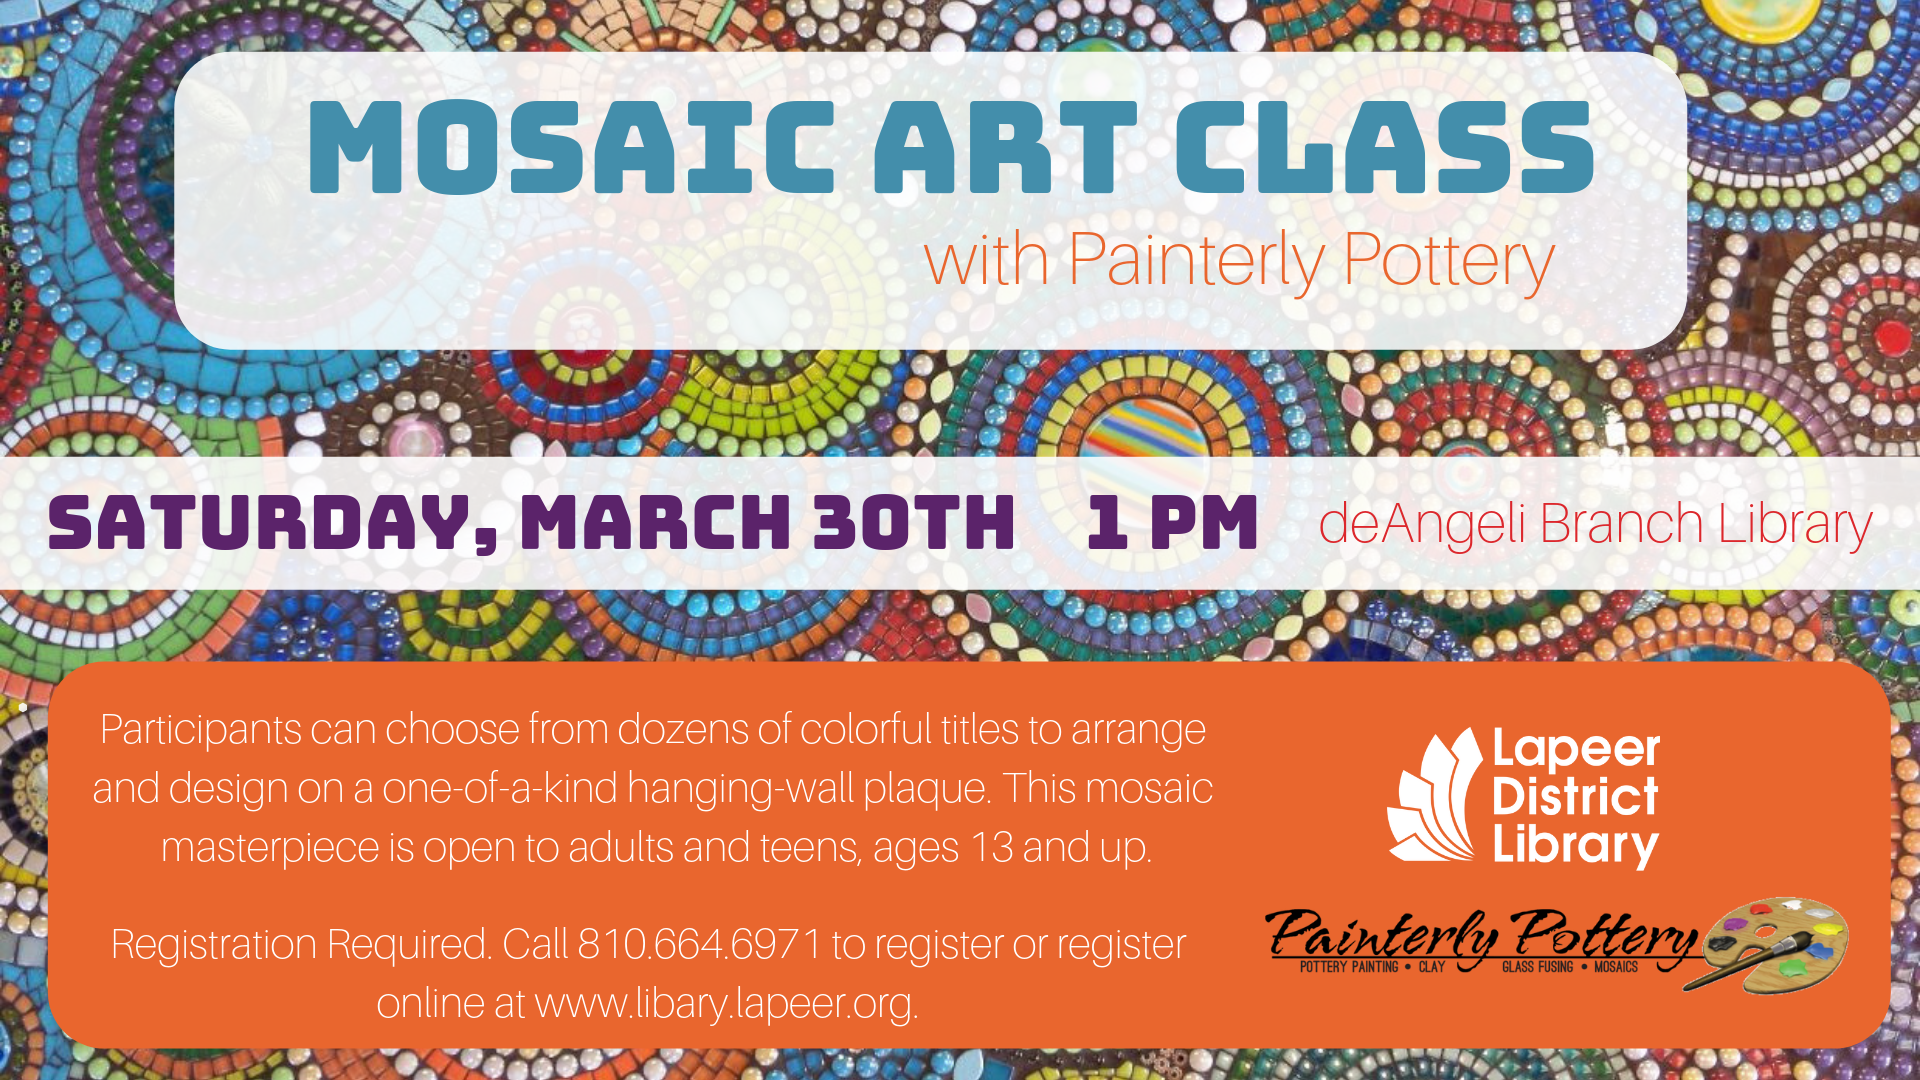 Mosaic Art Class with Painterly Pottery